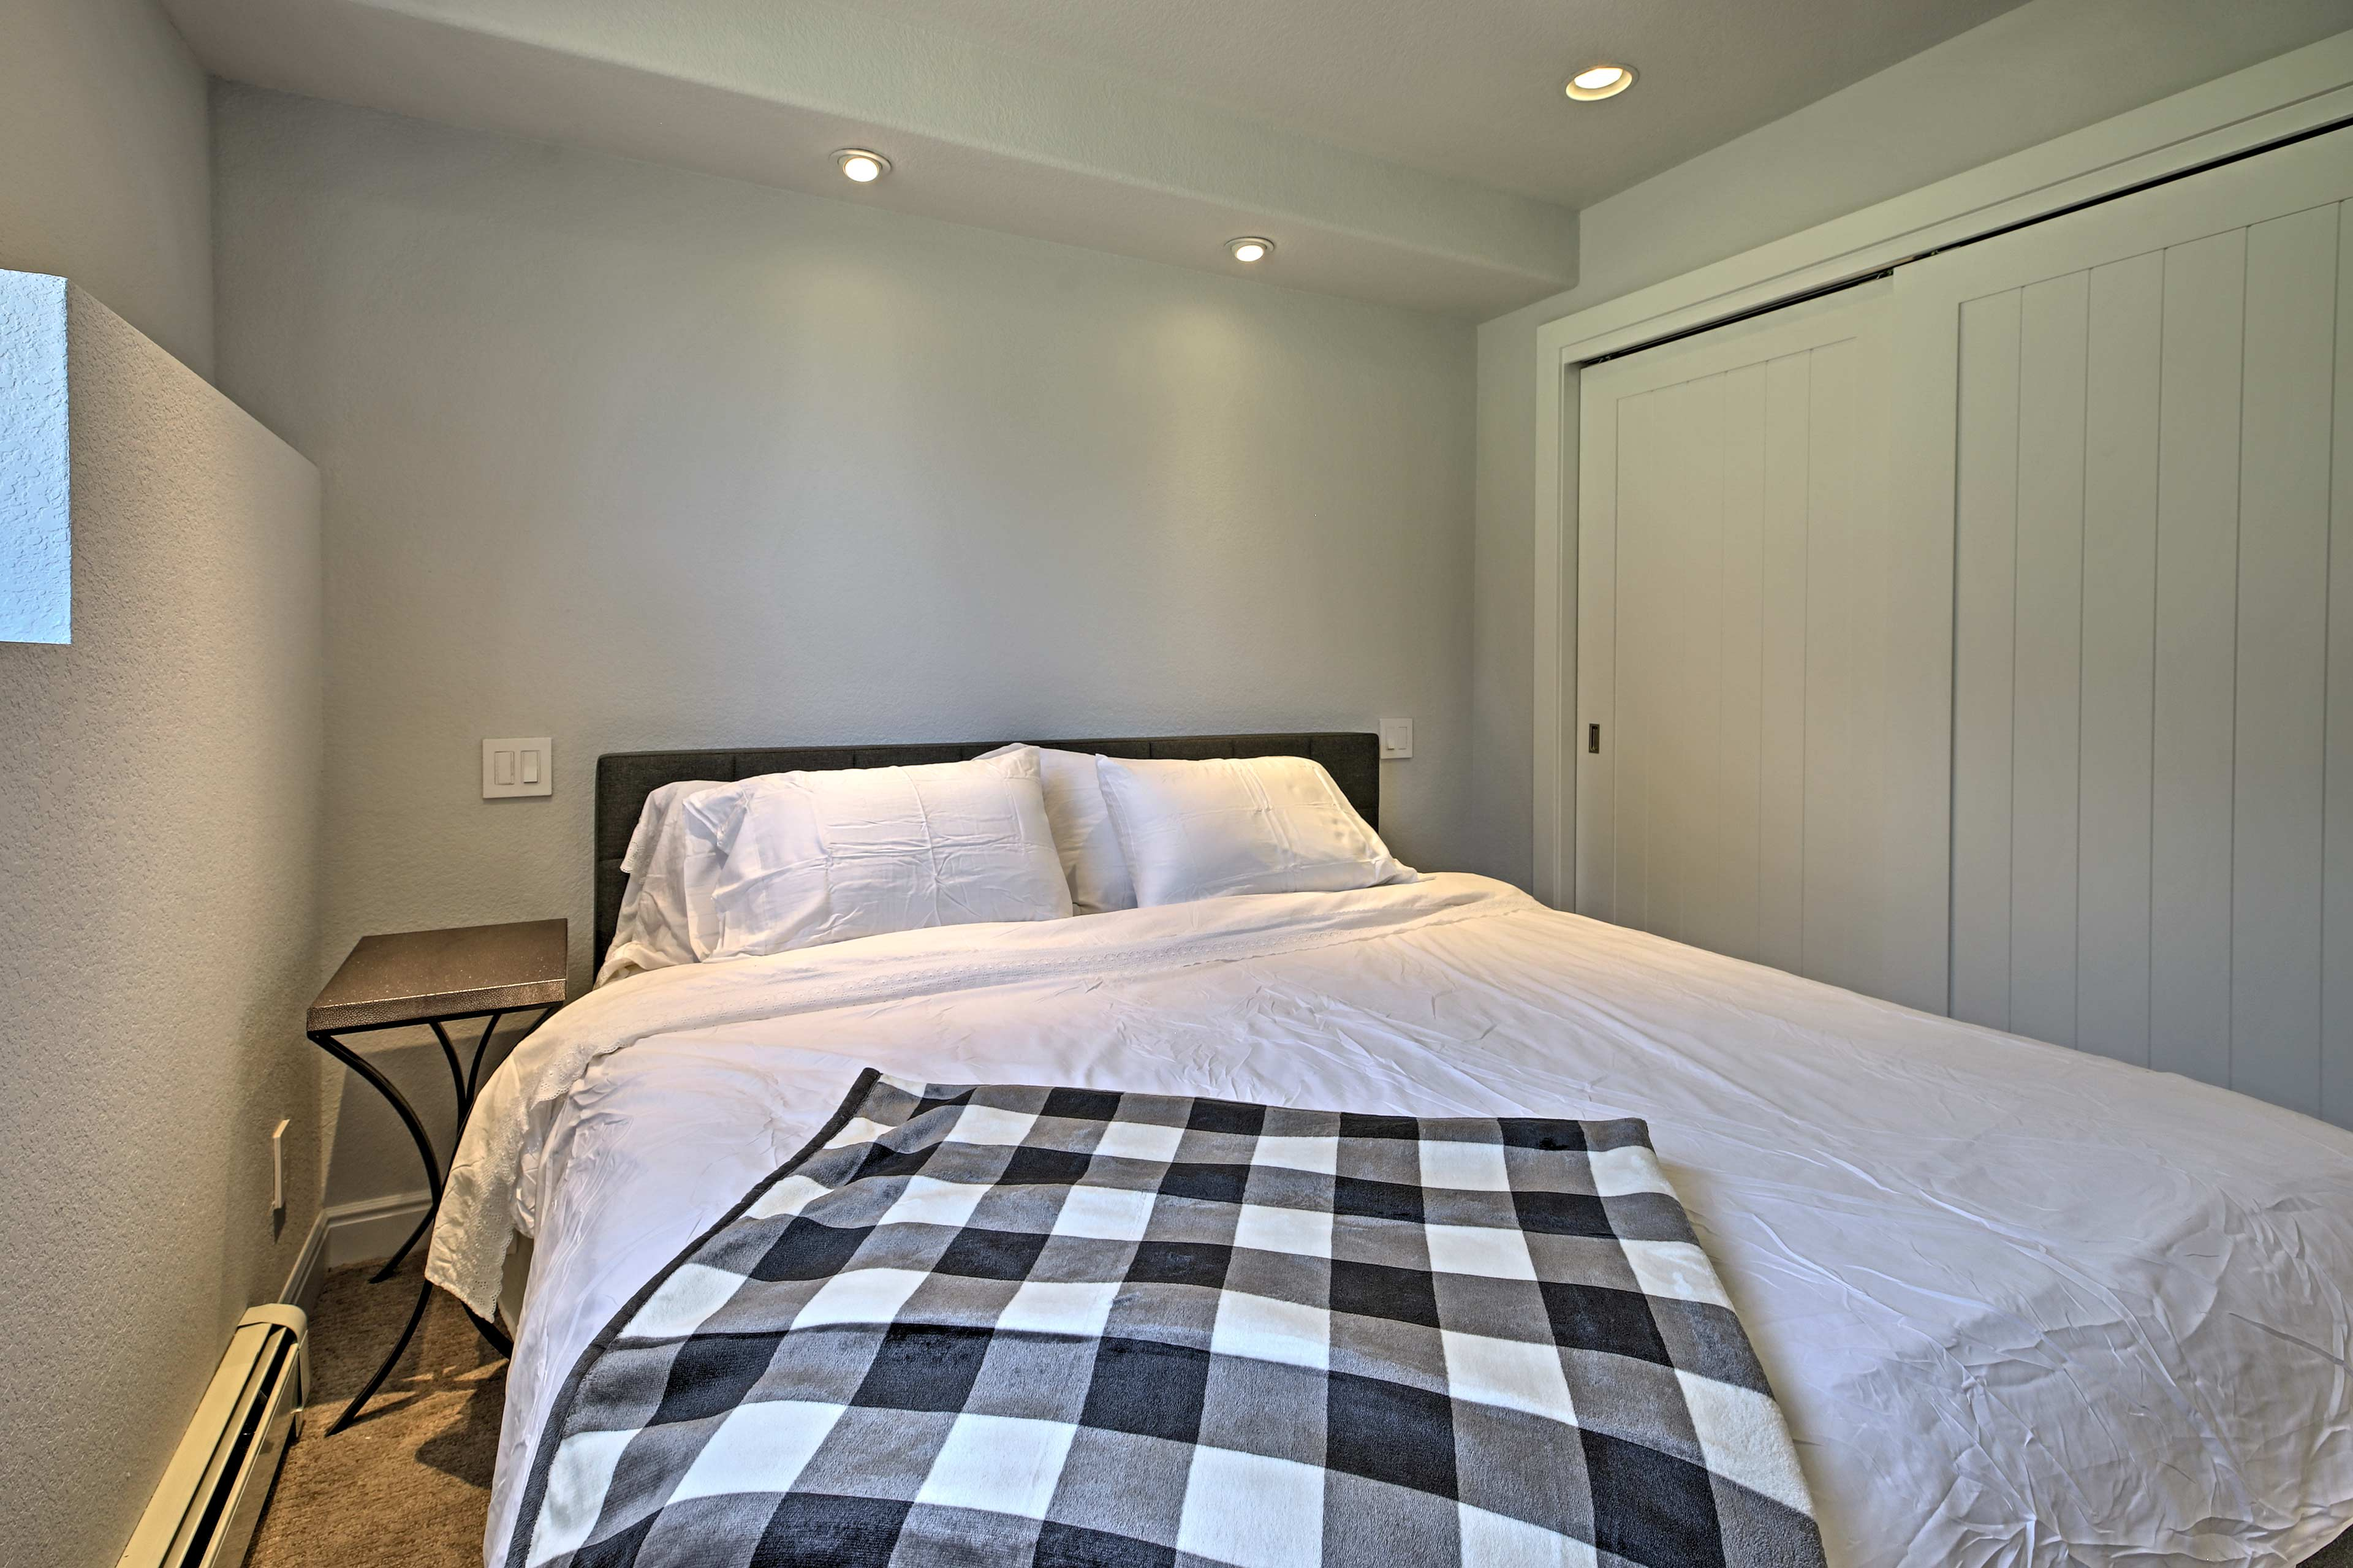 The second bedroom has an additional king mattress.